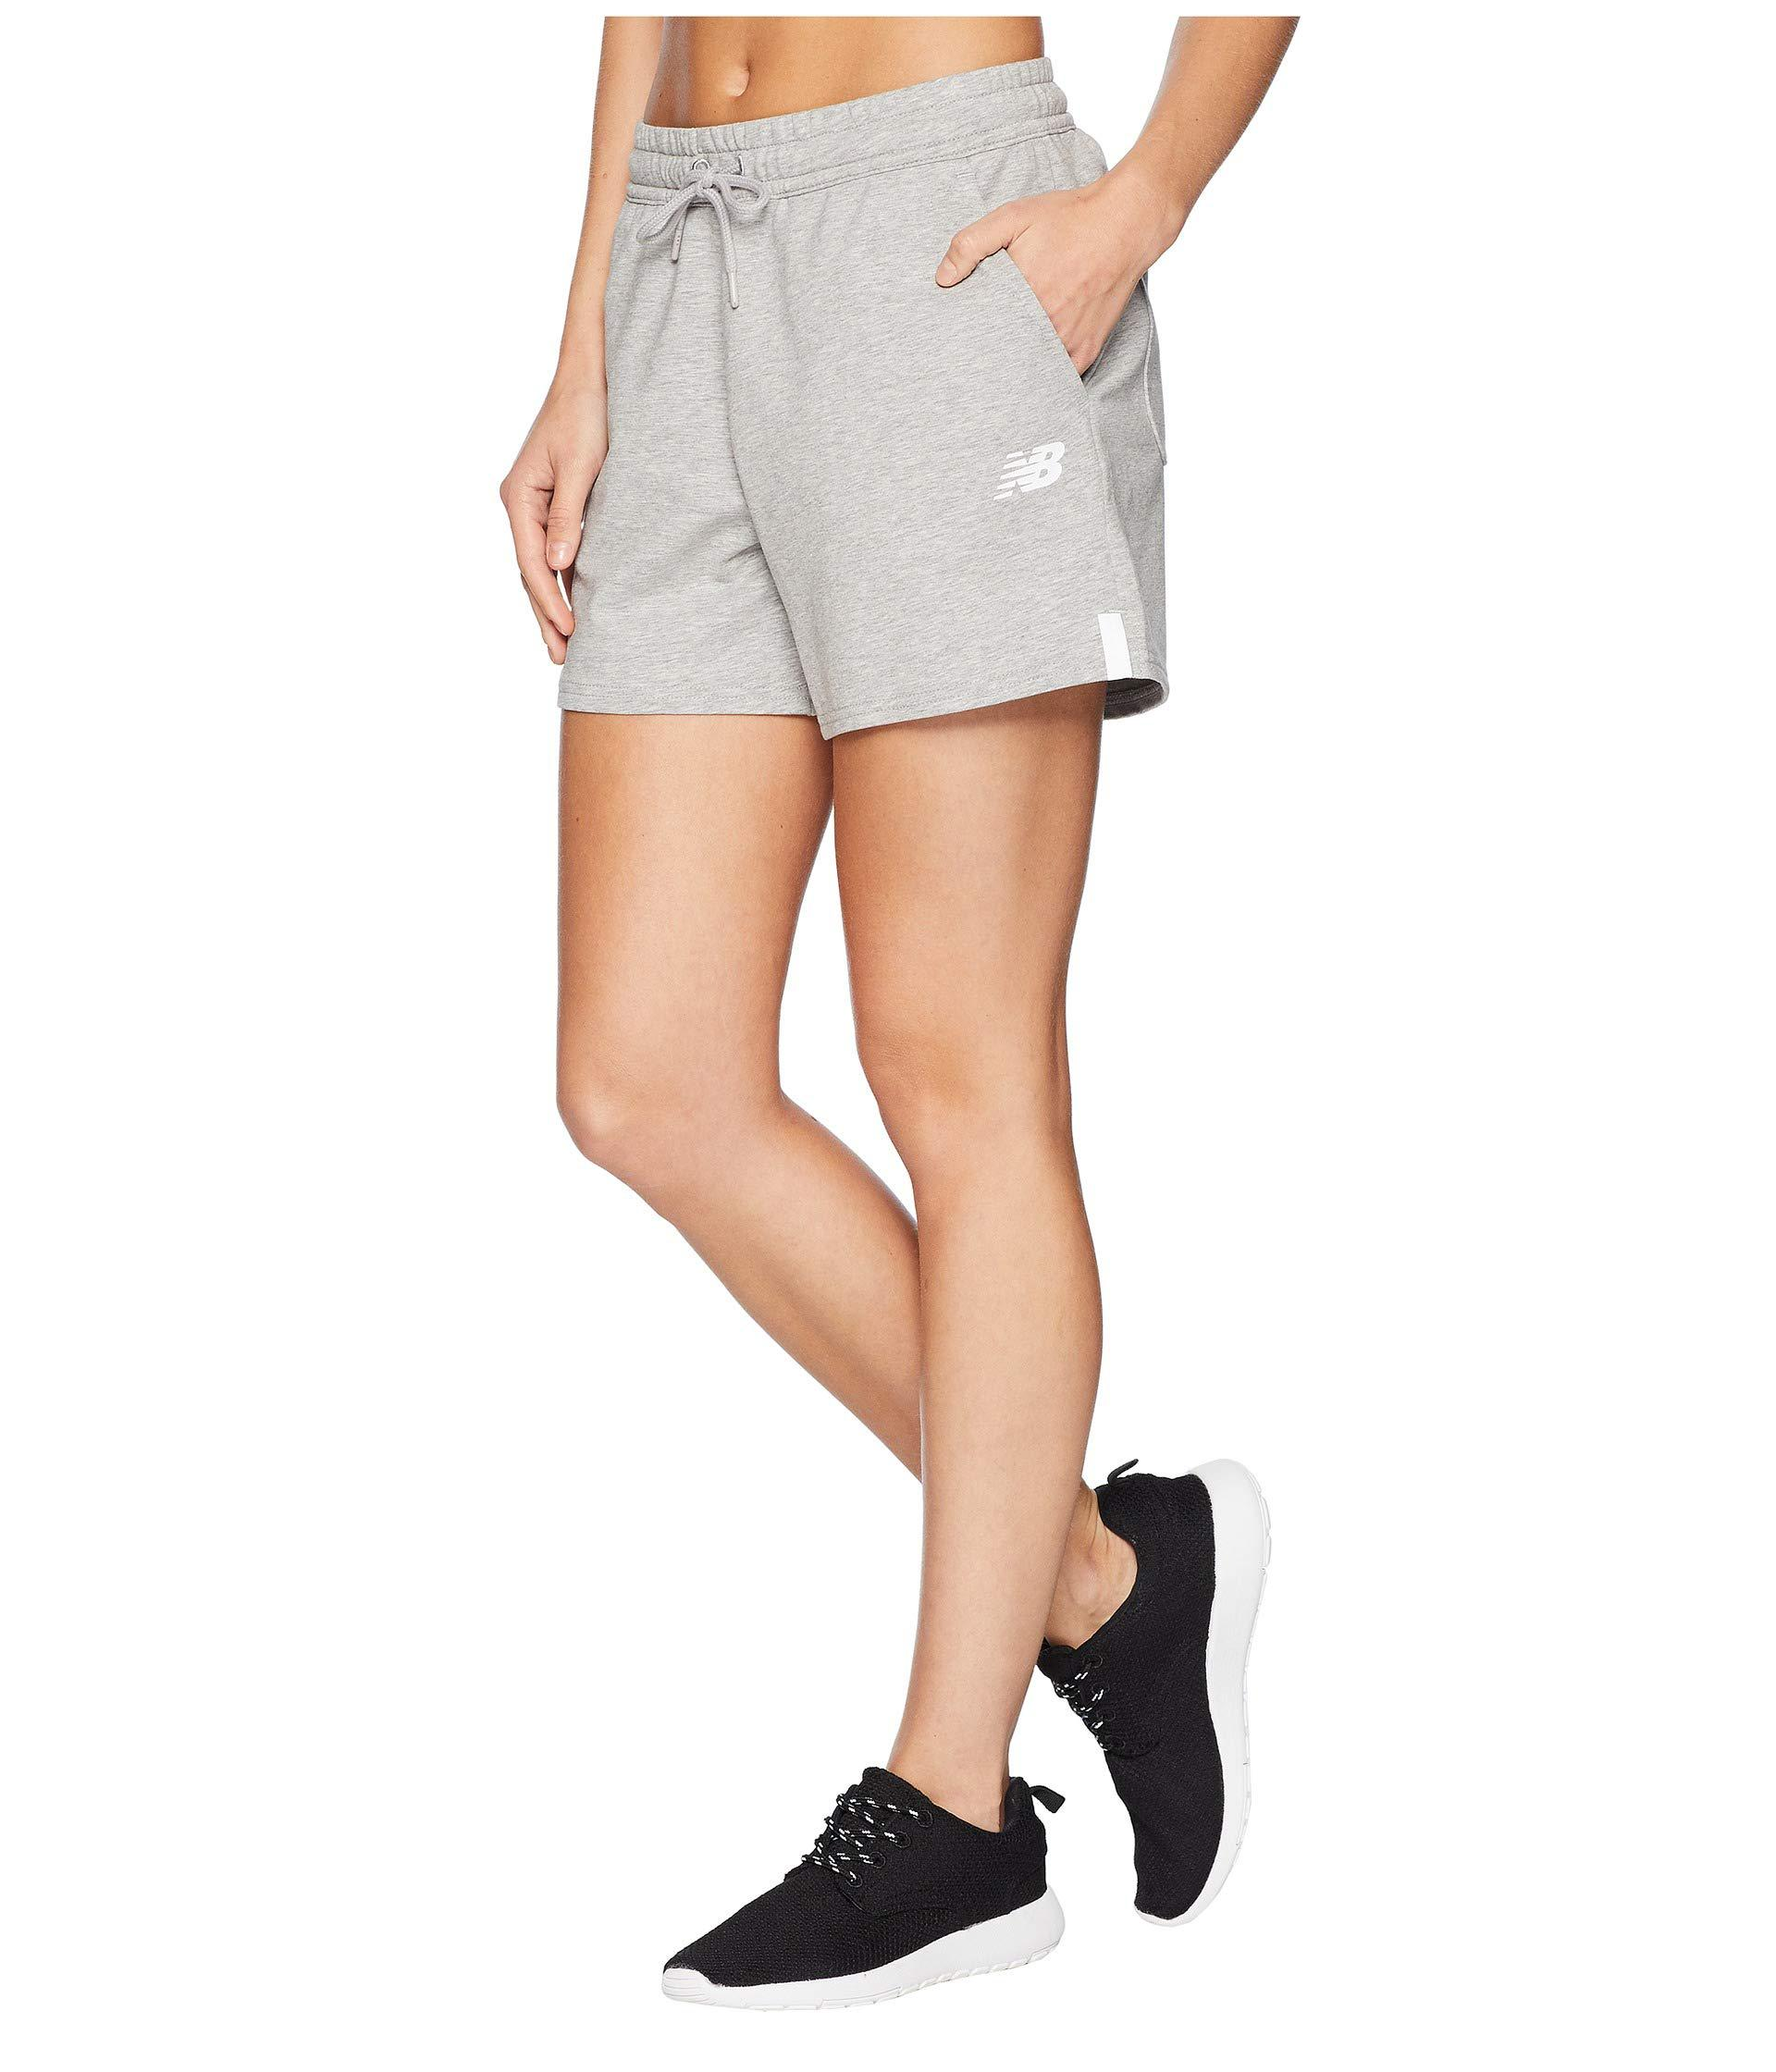 753a4af18875d Lyst - New Balance Nb Athletic Knit Shorts in Gray